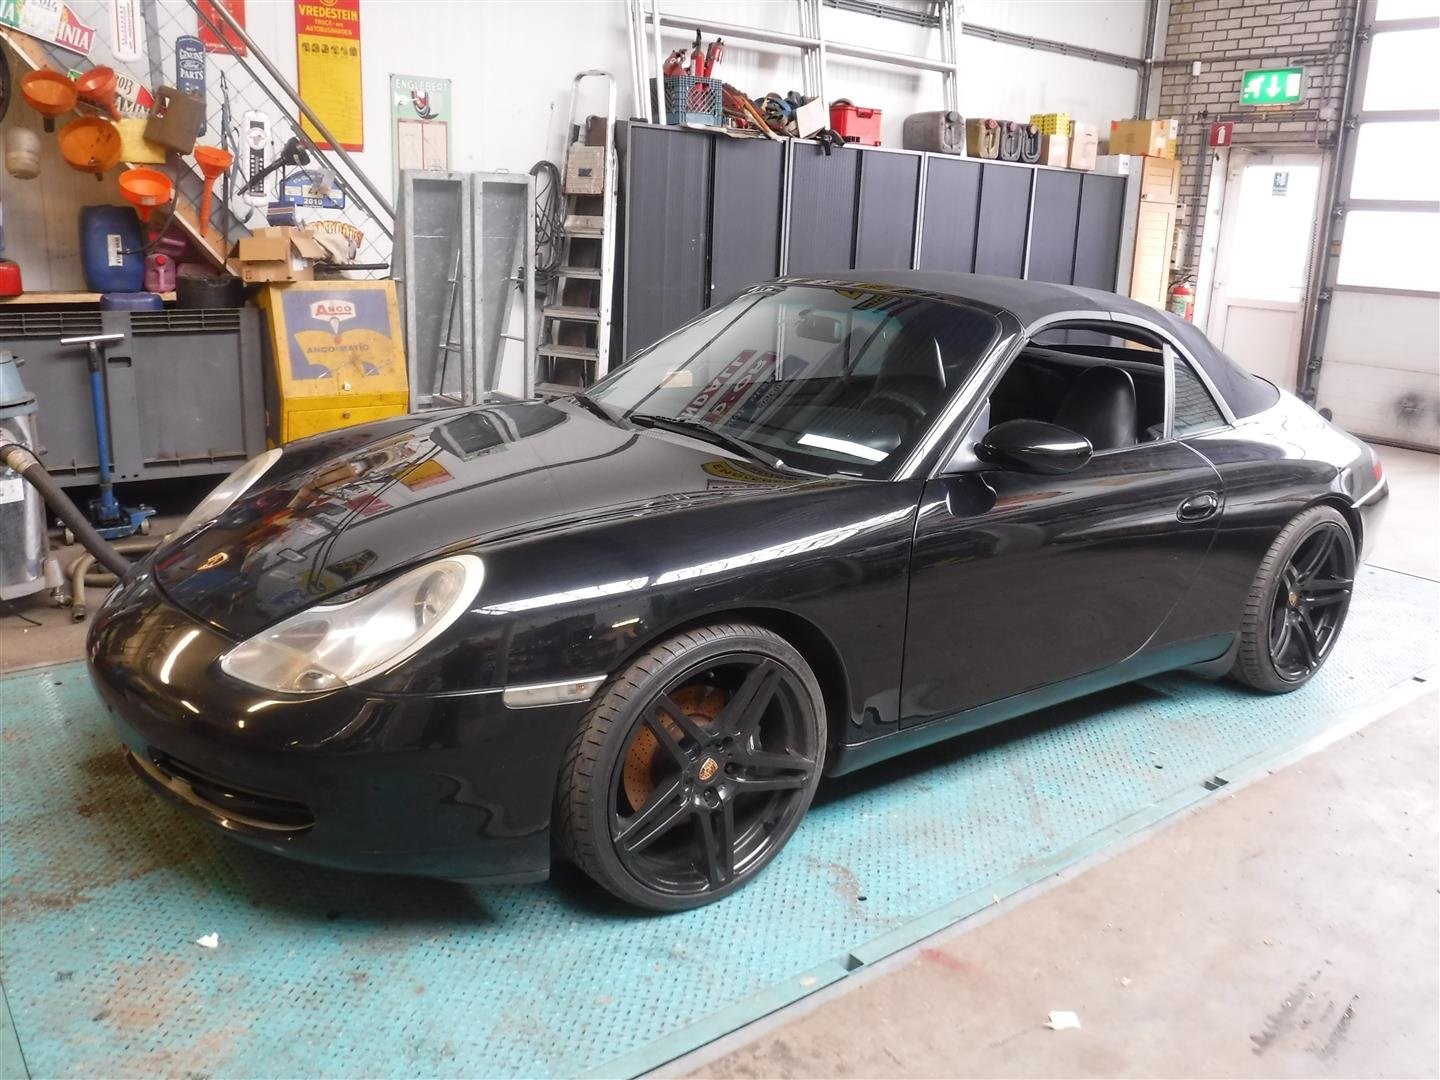 1999 Porsche 996 supercharger convertible For Sale (picture 2 of 6)